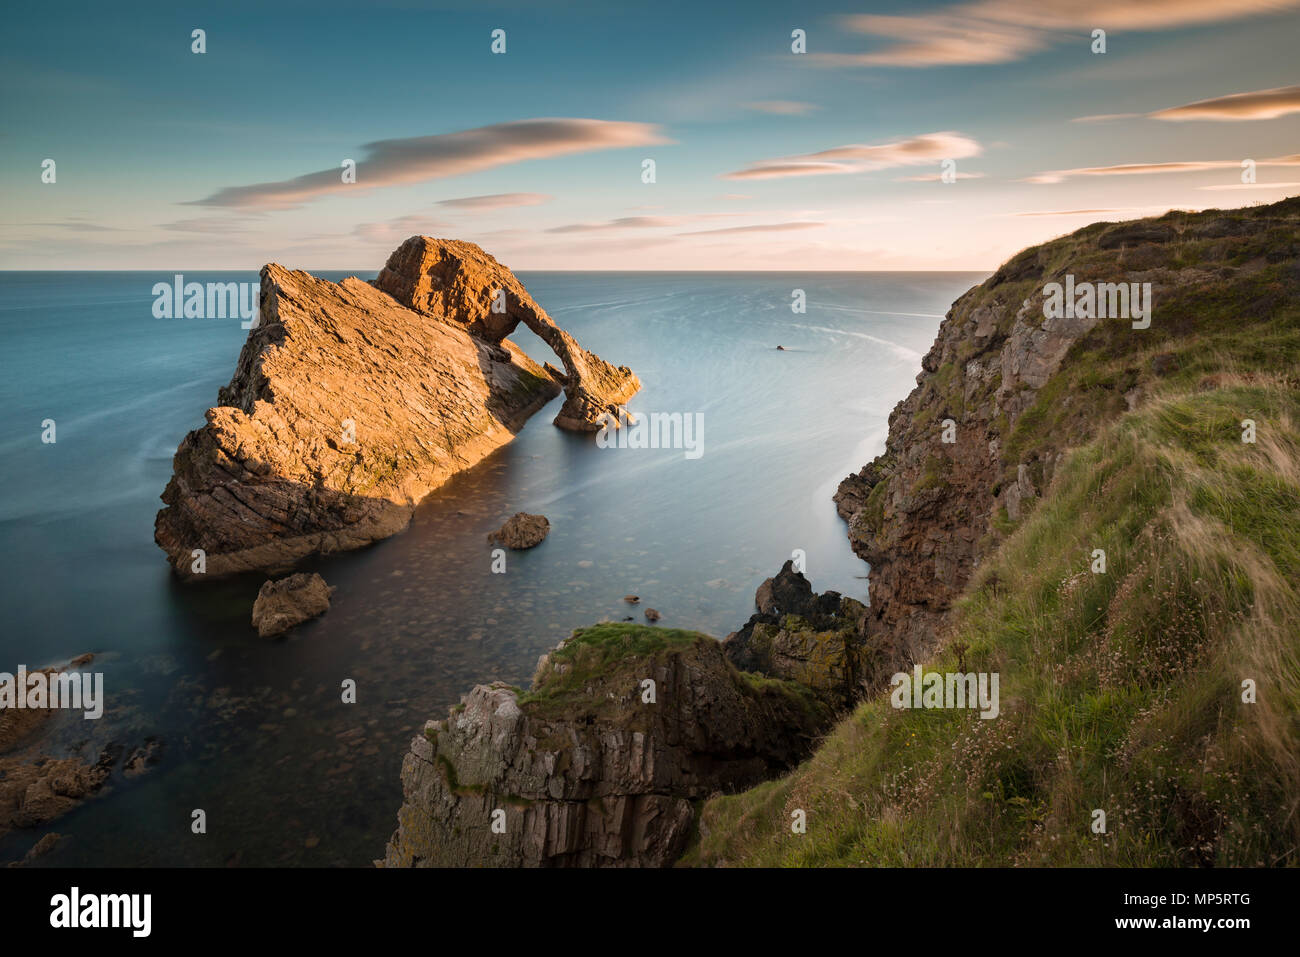 Golden light falls on Bow Fiddle Rock on the Scottish coastline at Portknockie, Moray, Scotland, UK - Stock Image